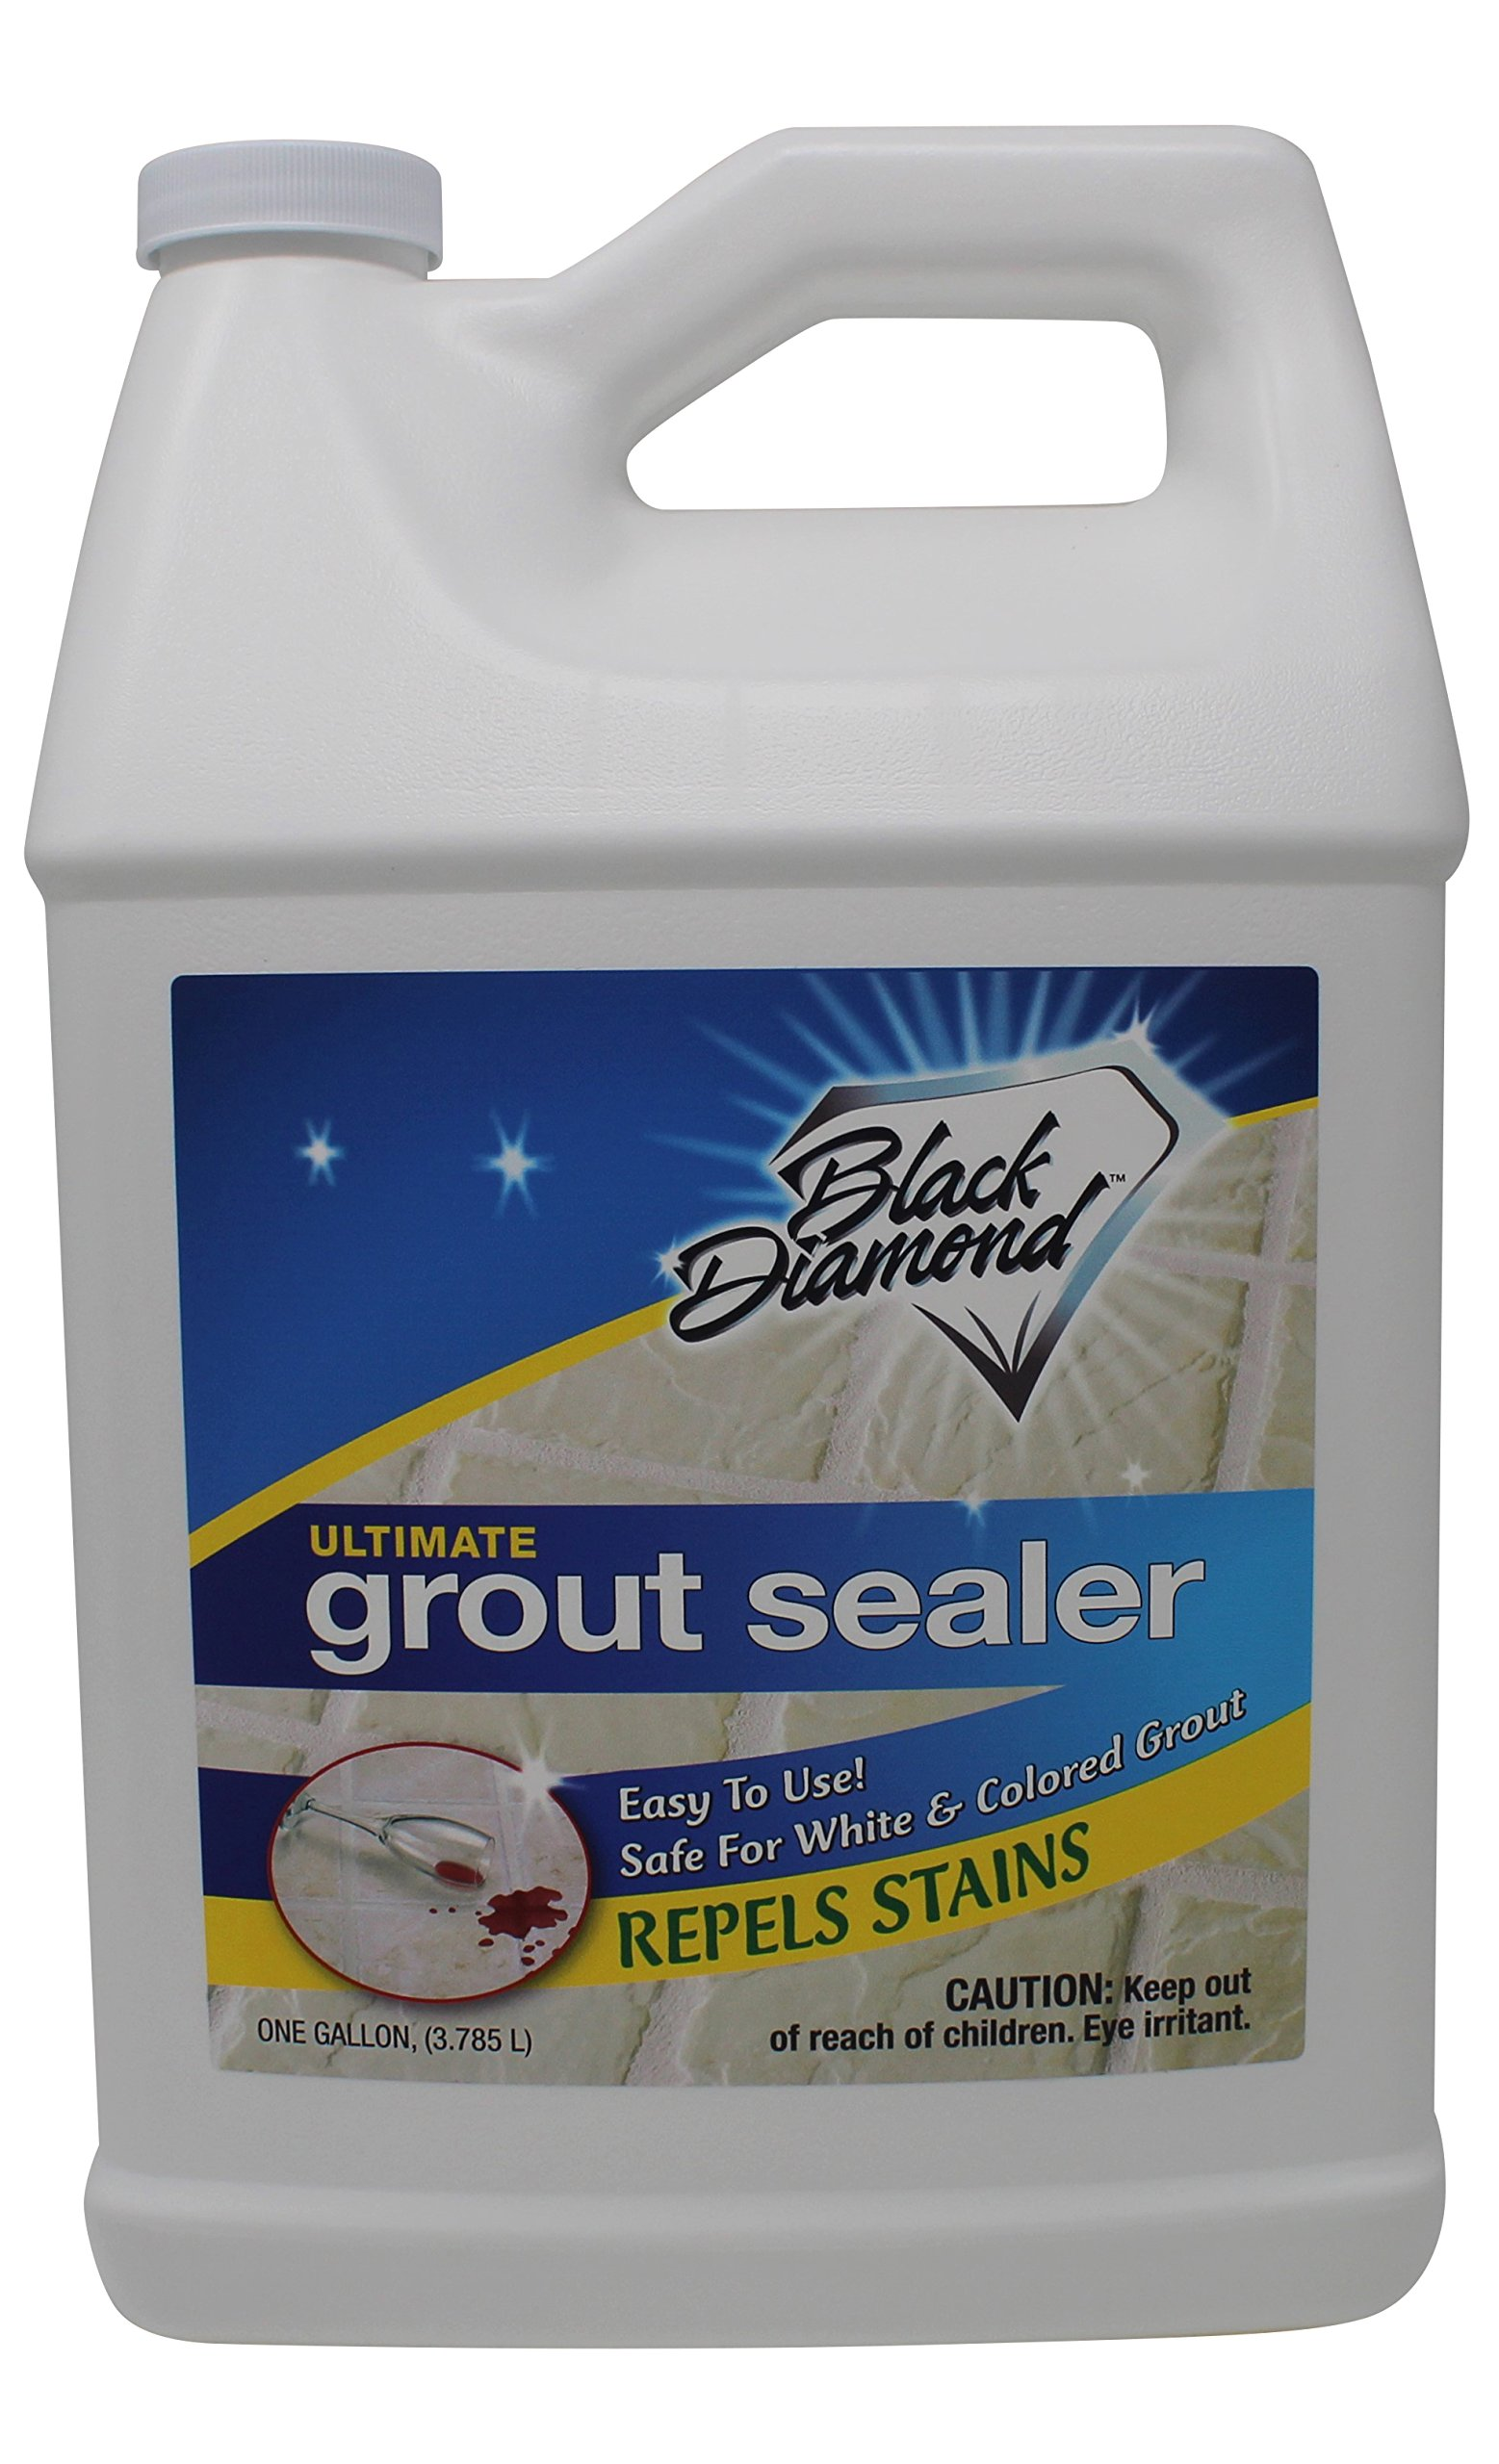 Black Diamond Stoneworks Ultimate Grout Sealer: Stain Sealant Protector for Tile, Marble, Floors, Showers and Countertops. (1-Gallon)